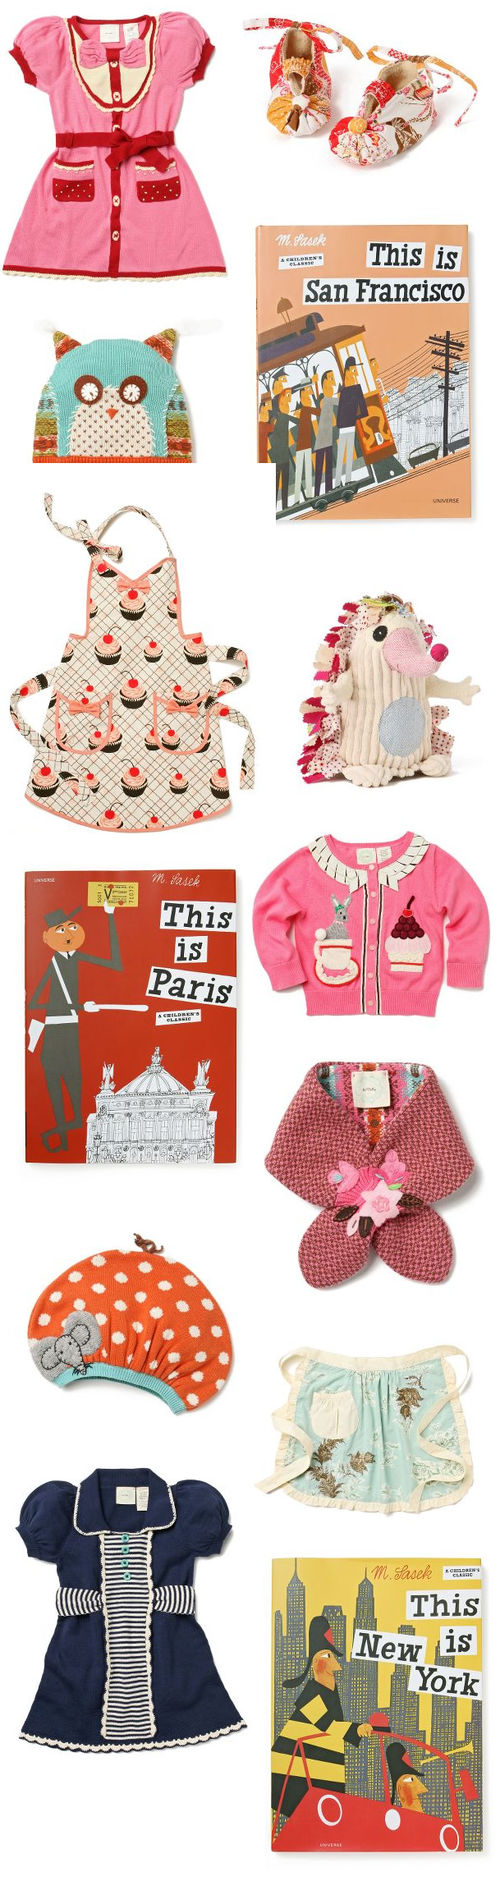 Anthropologie_kids